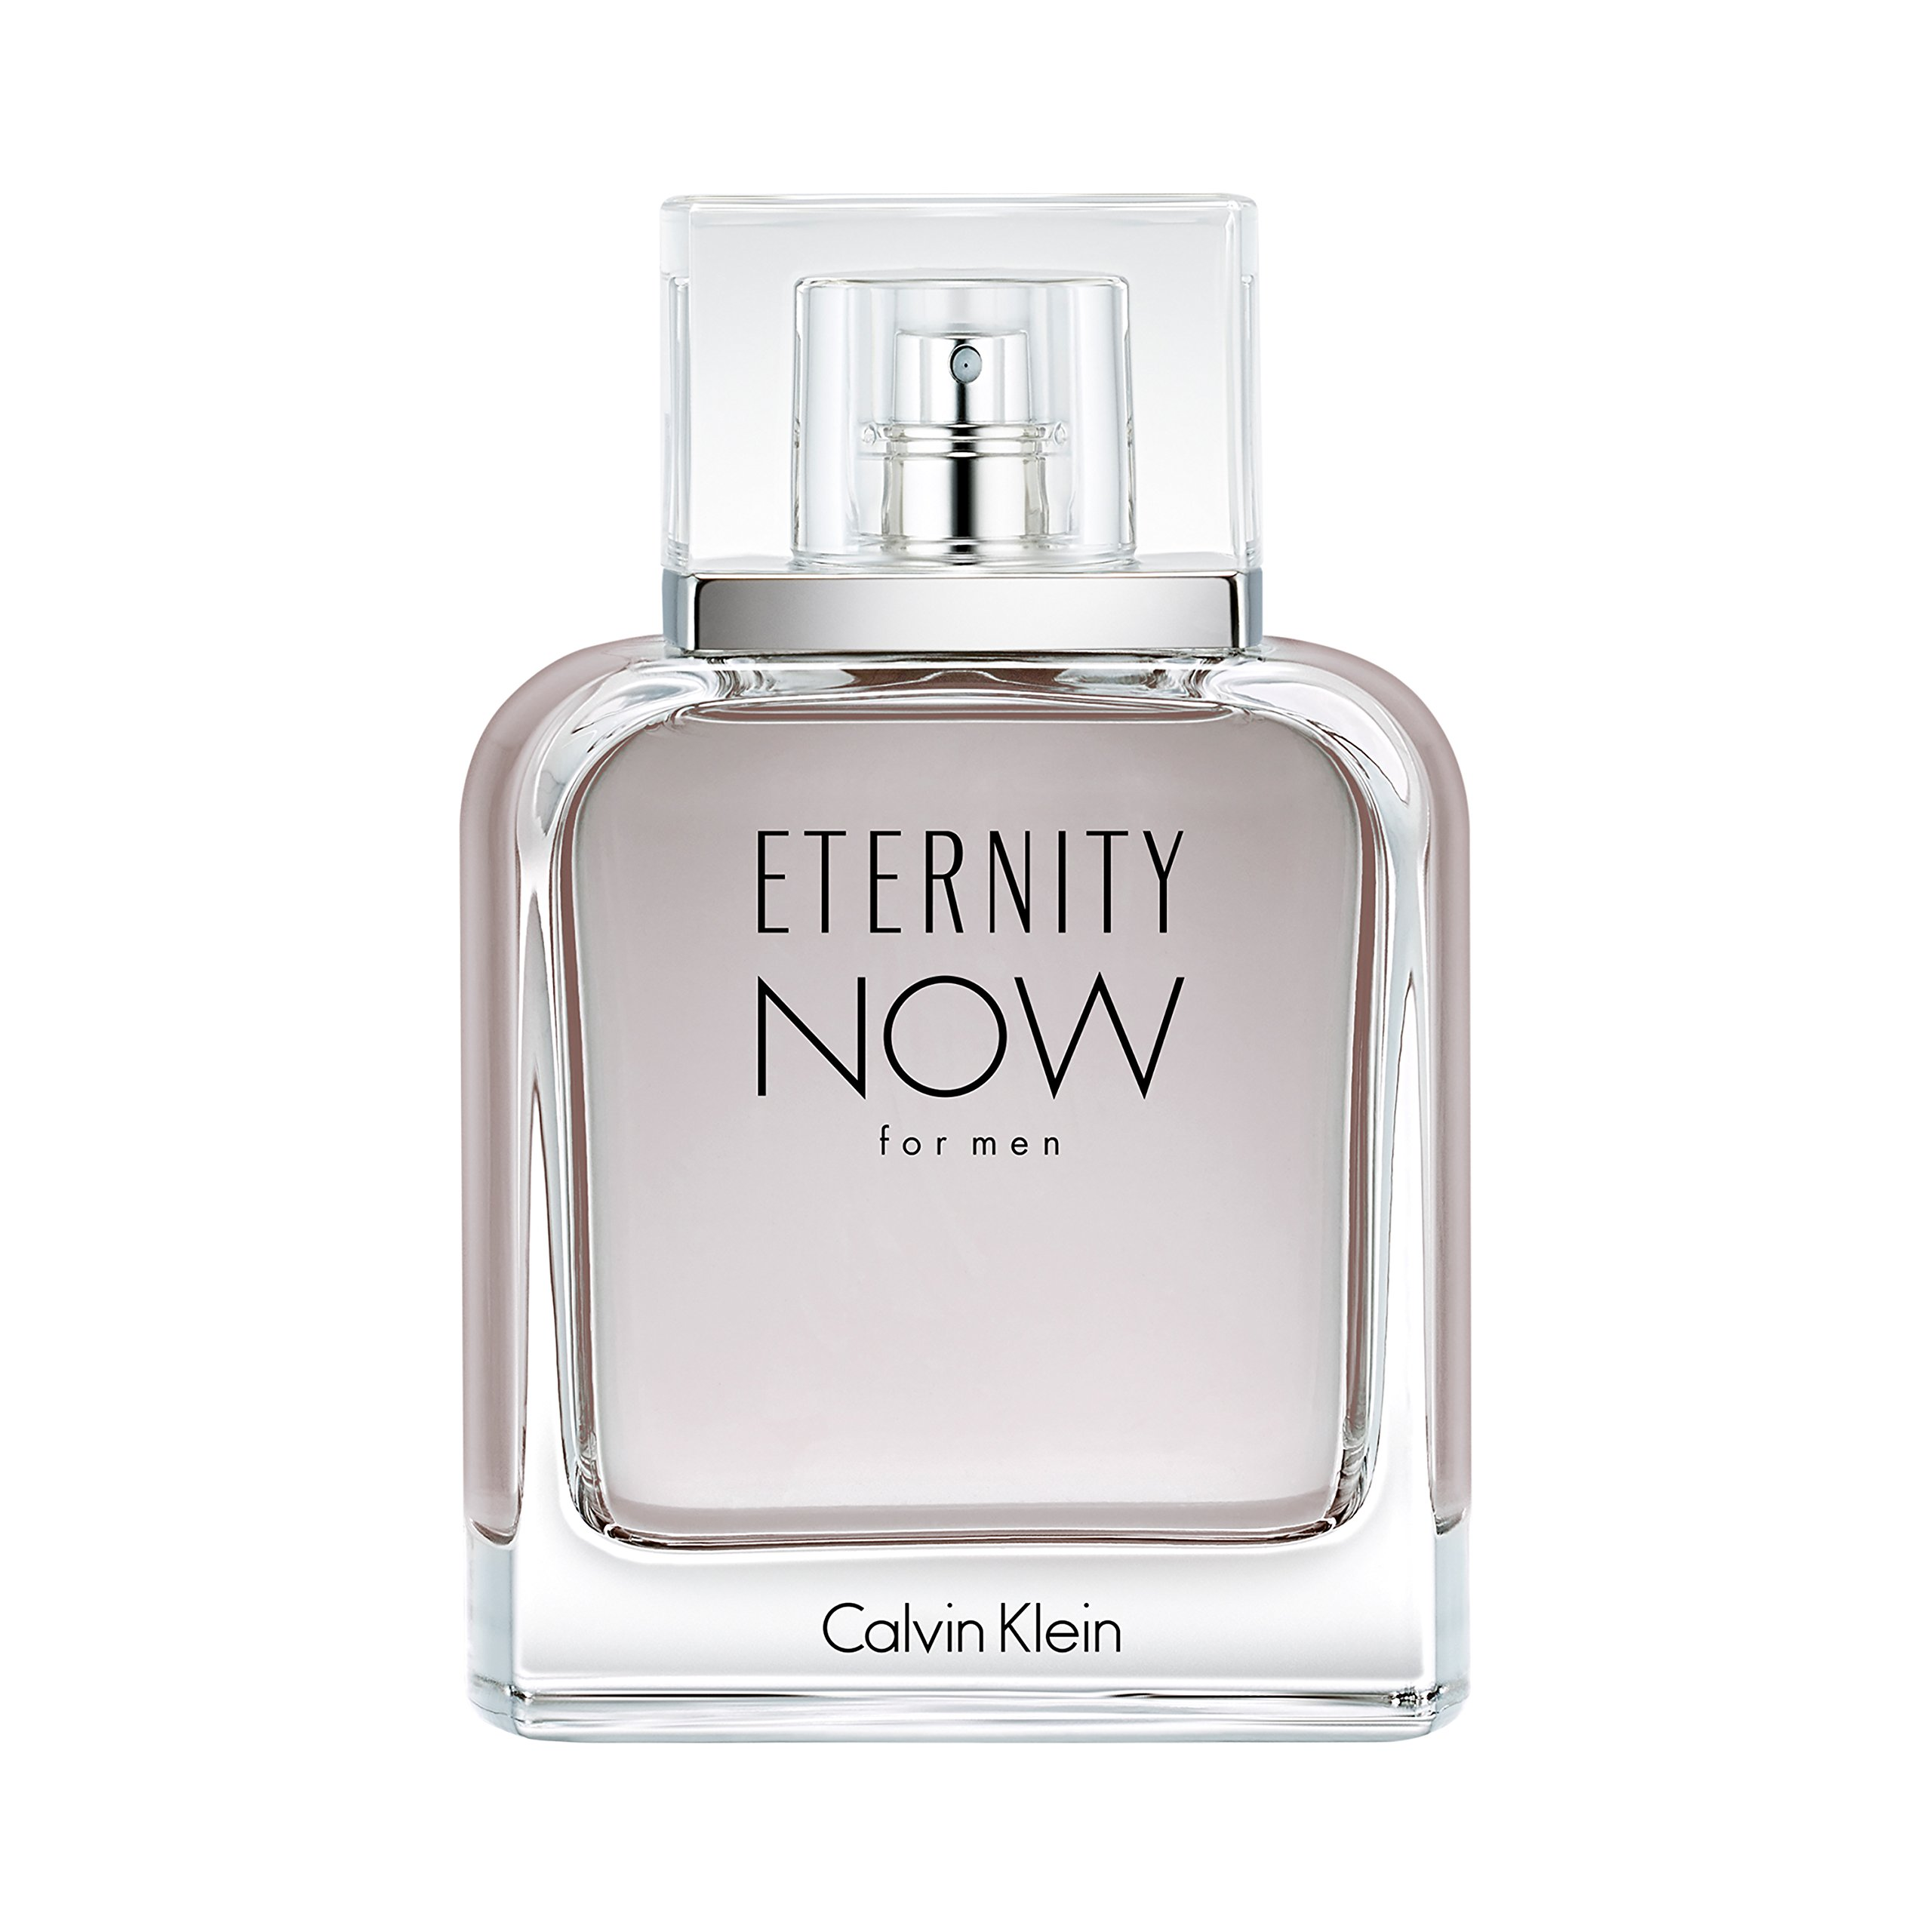 Calvin Klein Eternity Now Eau de Toilette Spray for Men, 3.4 fl. oz.